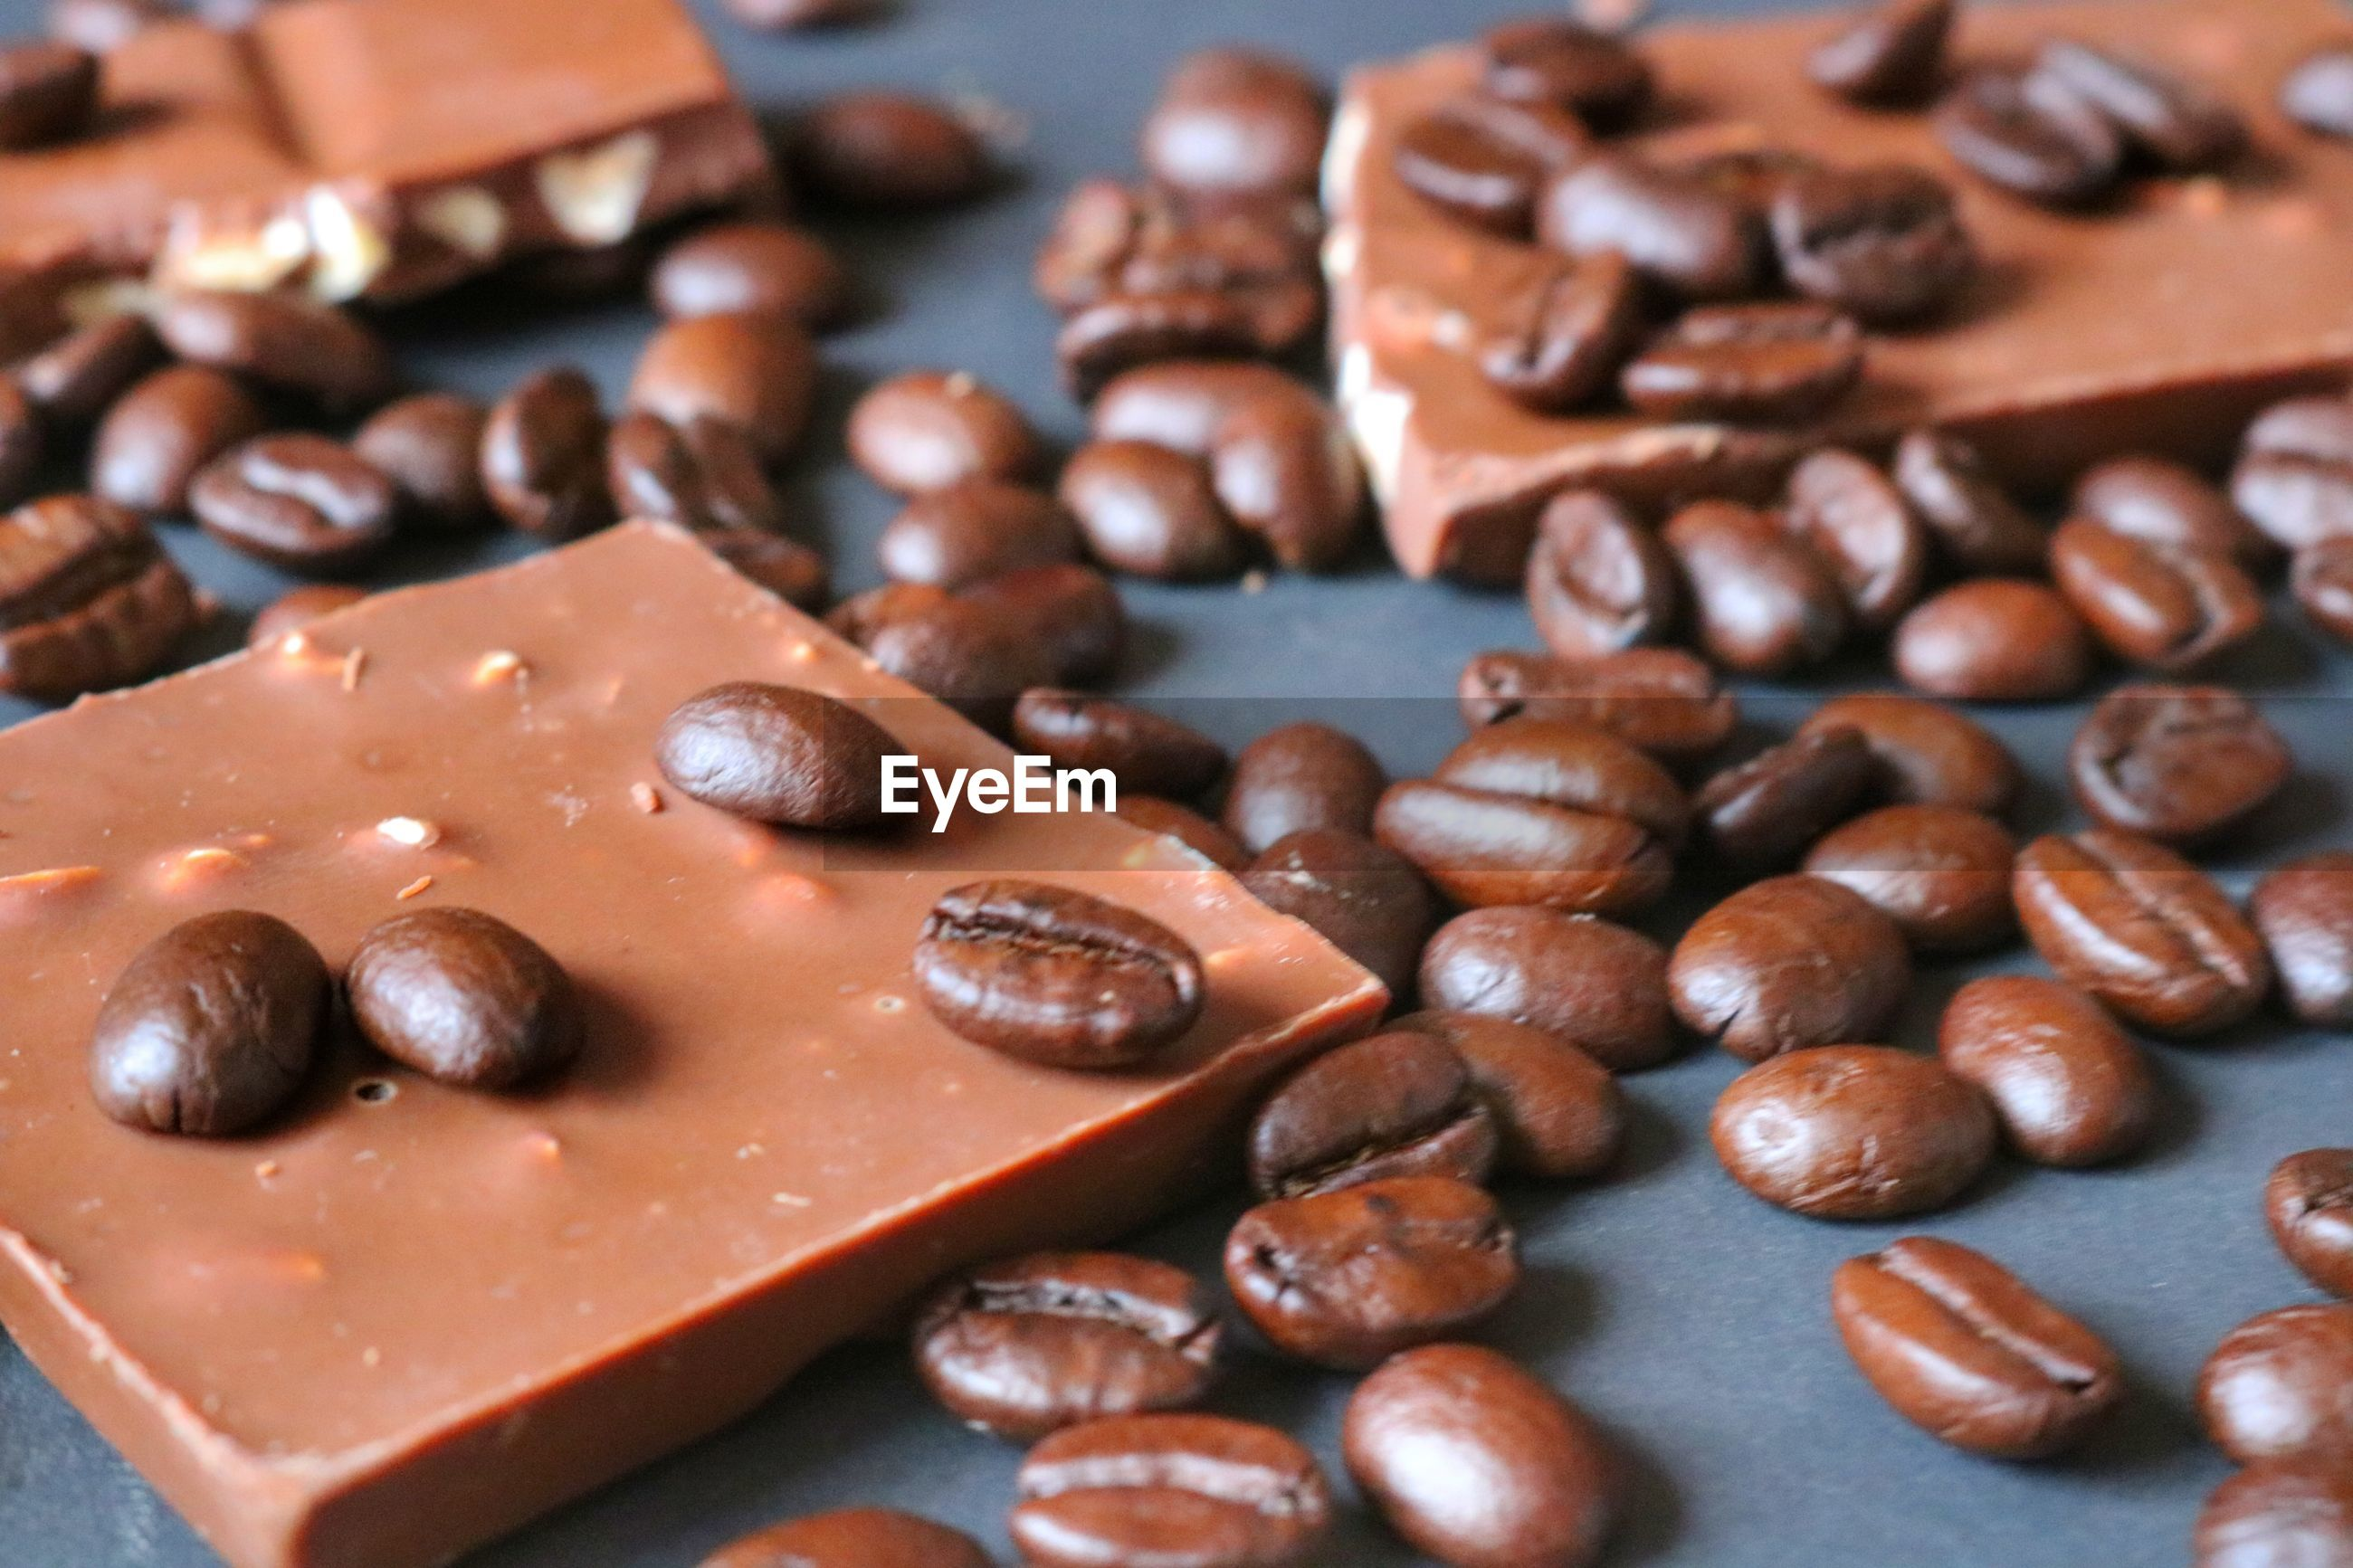 Close-up of coffee beans and chocolates on table